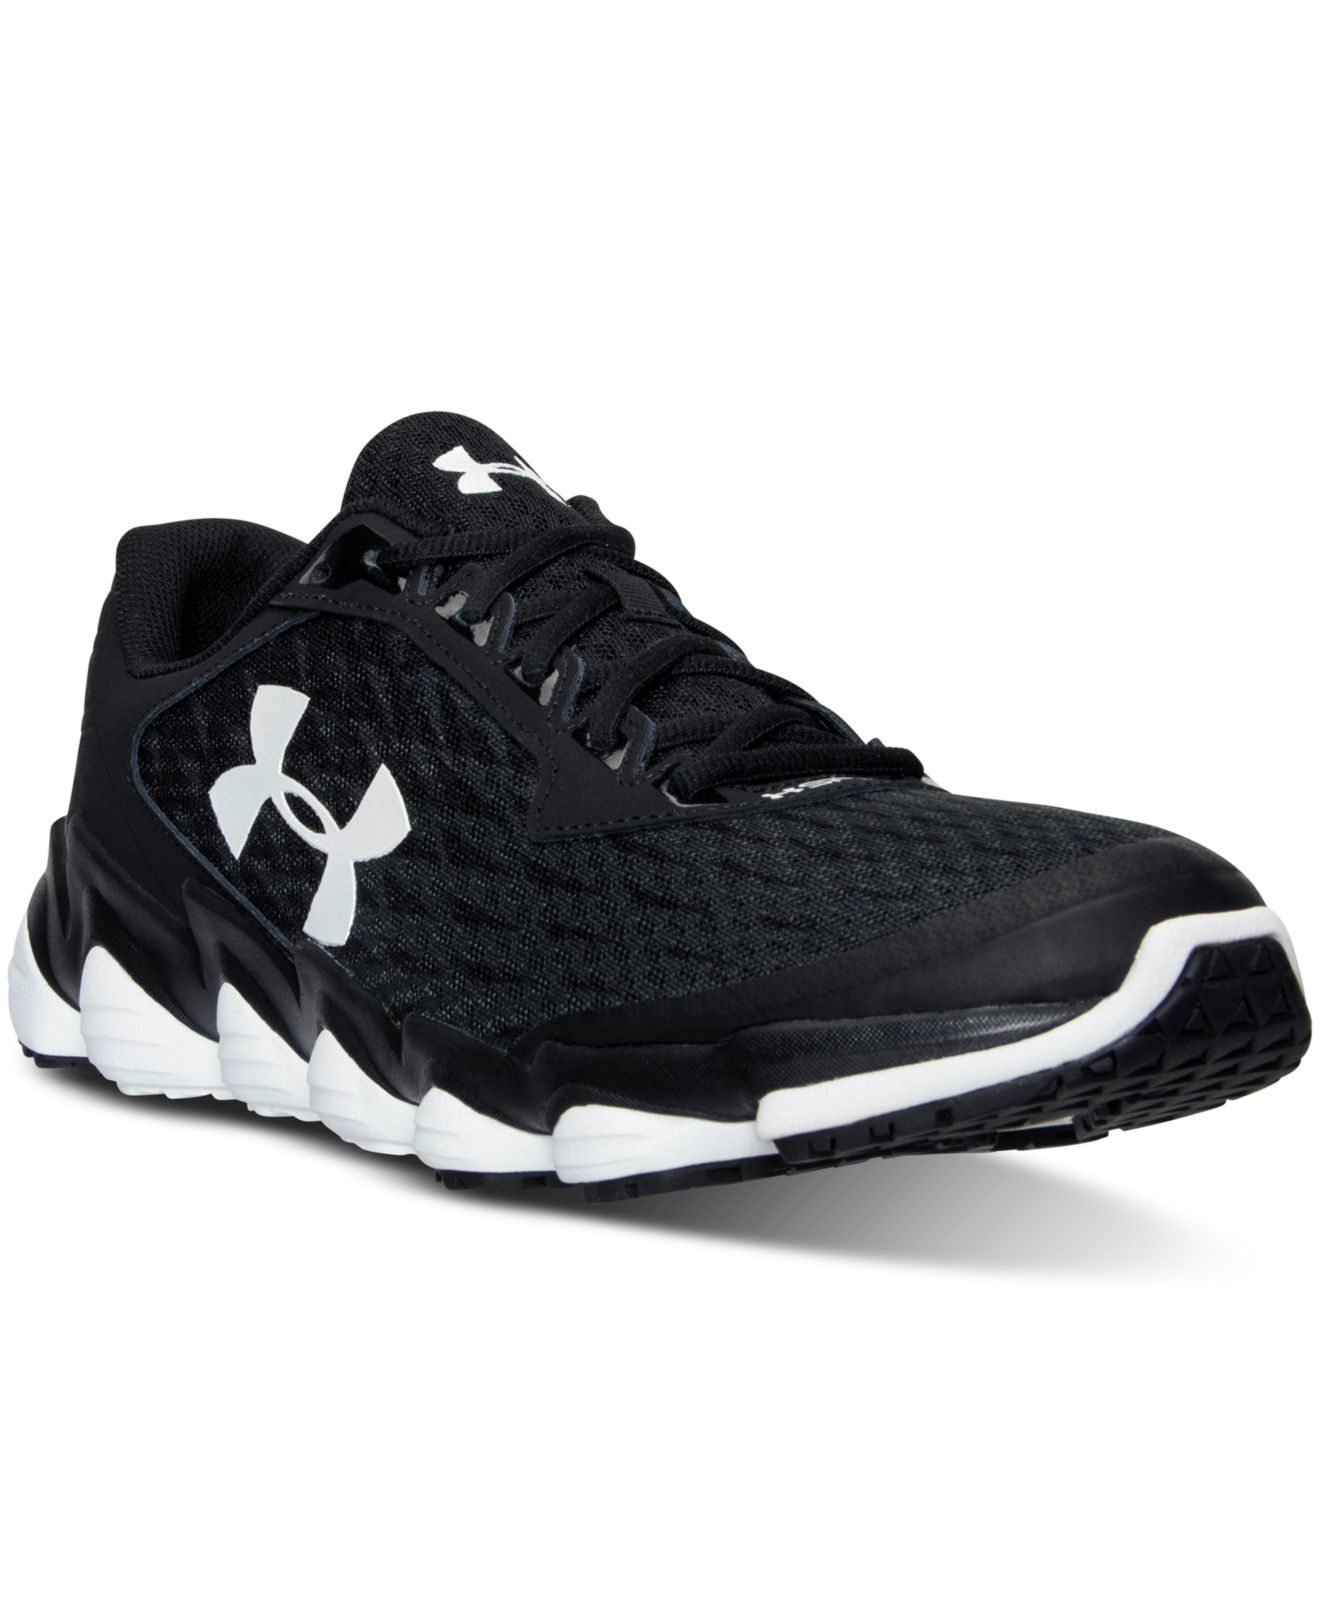 b122afba2bf87 official store mens under armour spine disrupt running shoes 65674 cef73